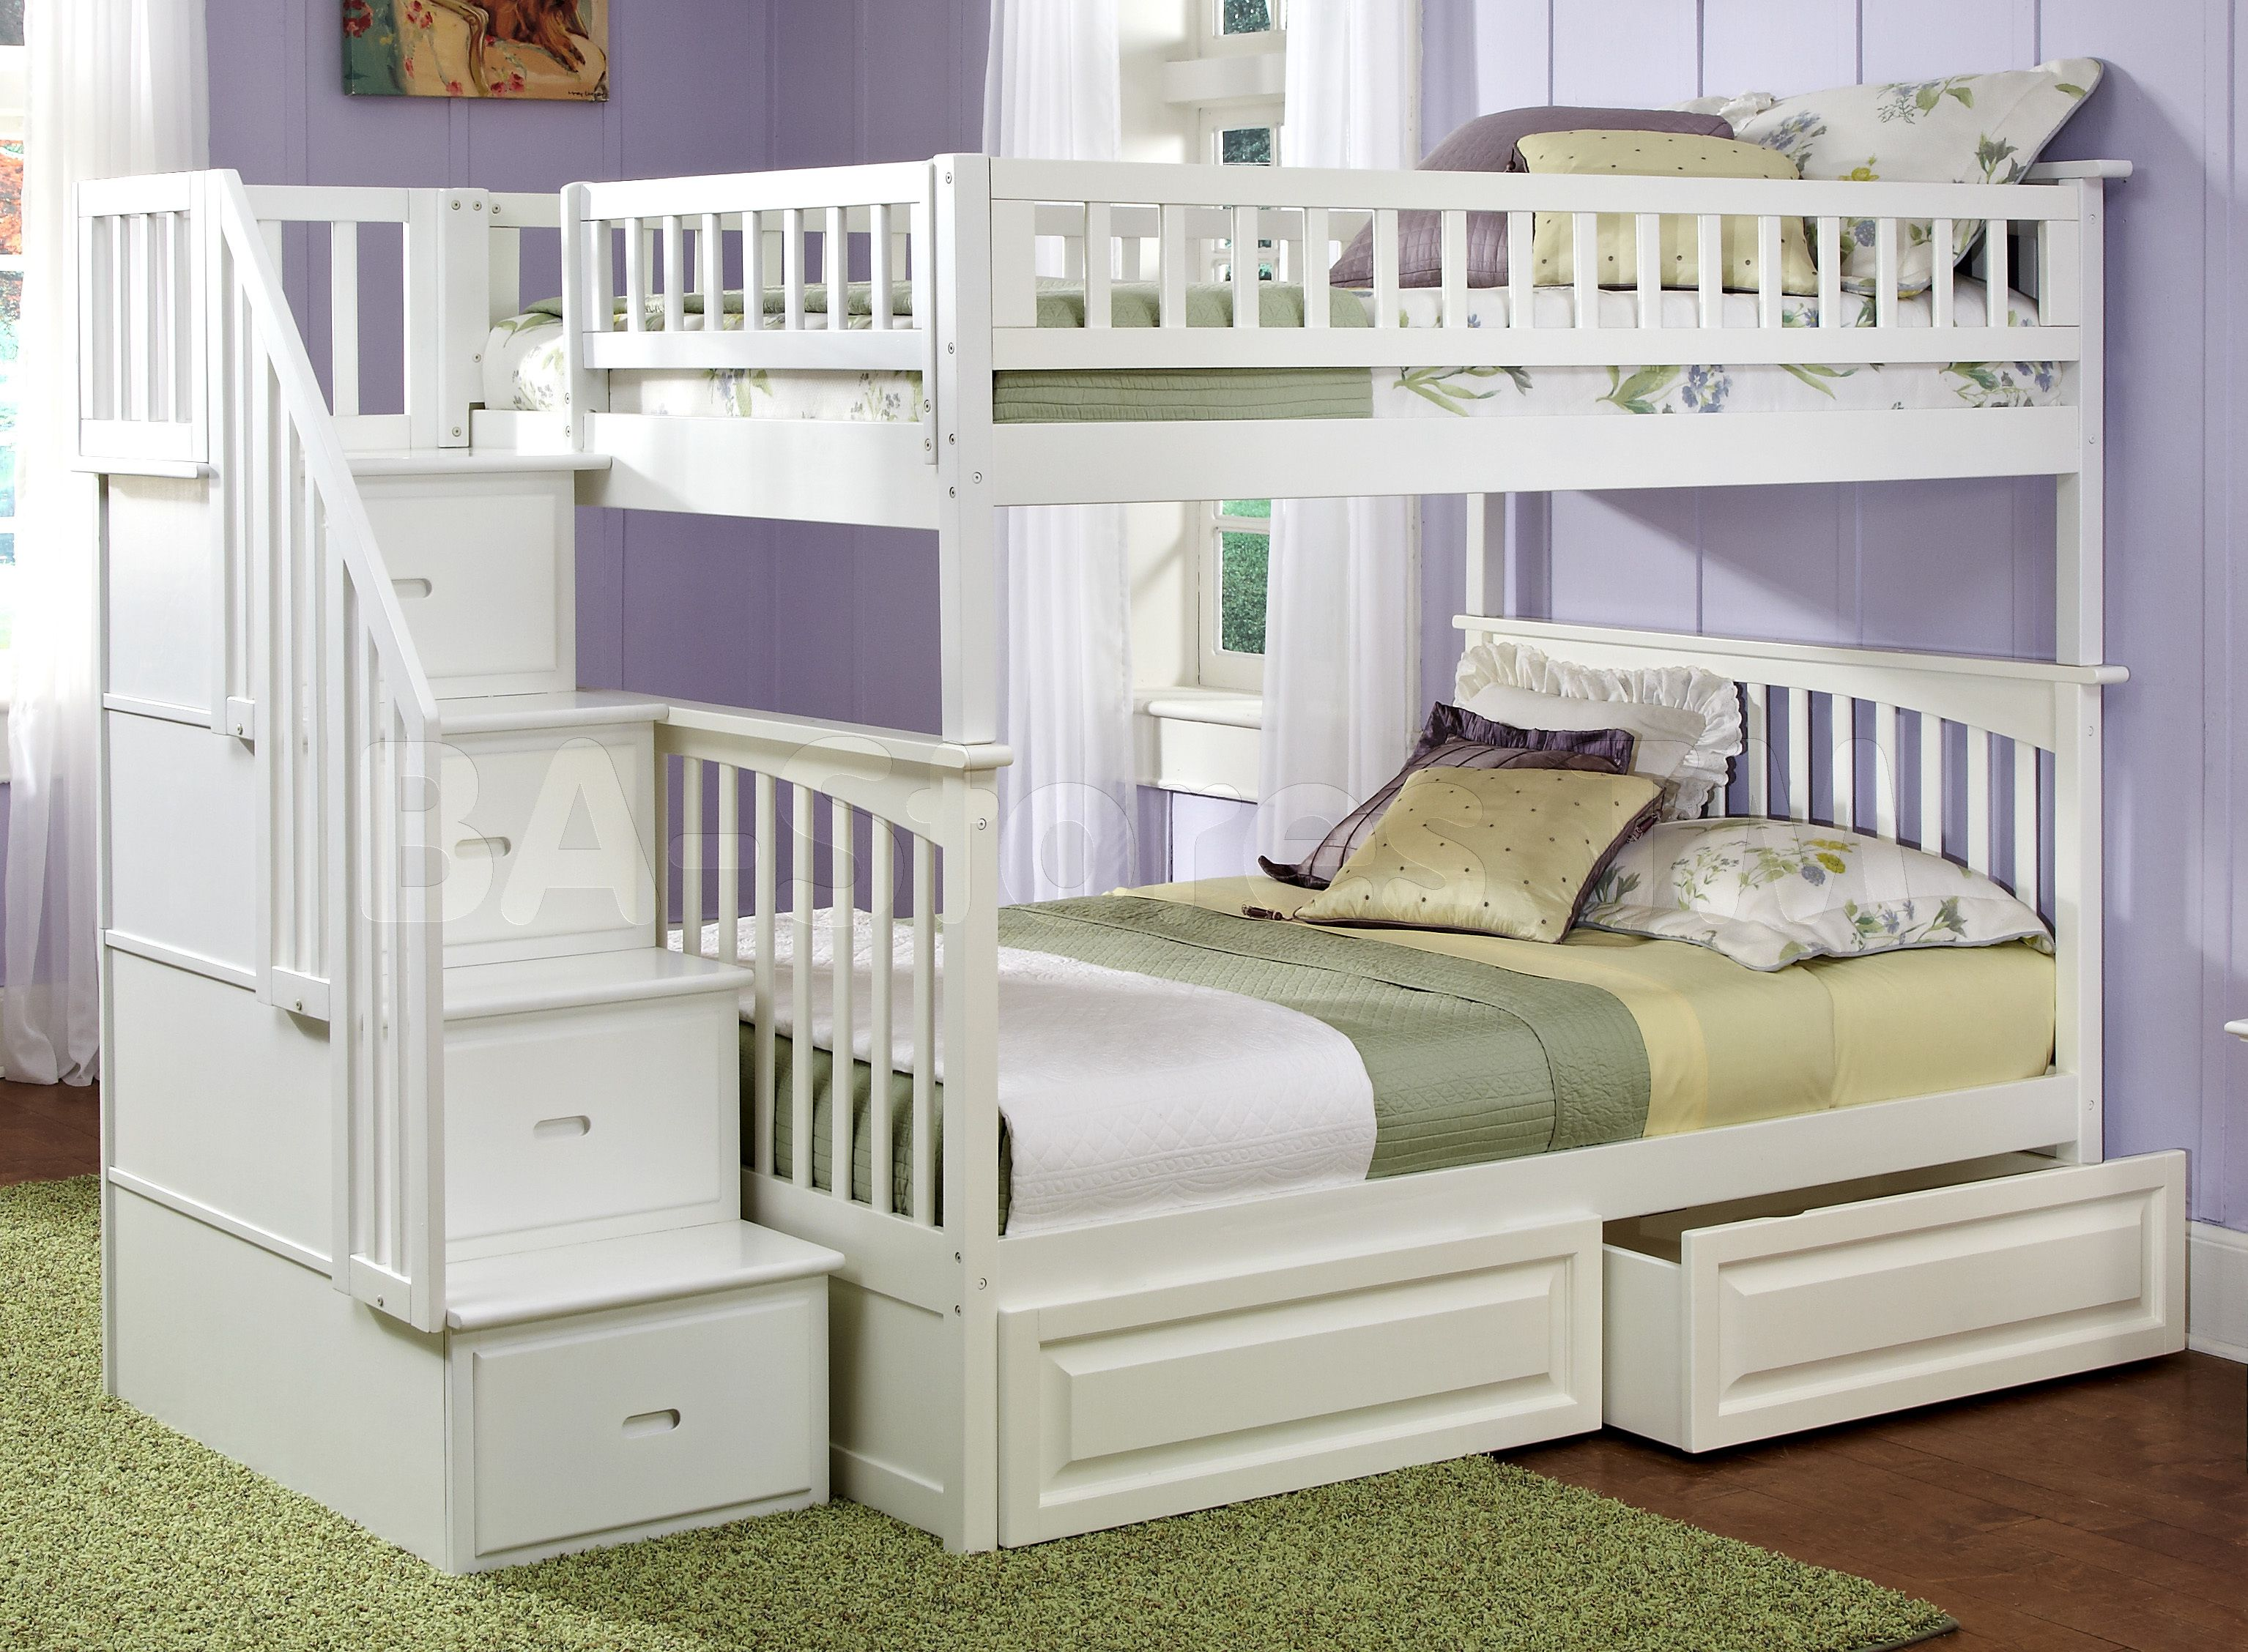 Staircase Bunk Beds I Think This Is An Amazing And